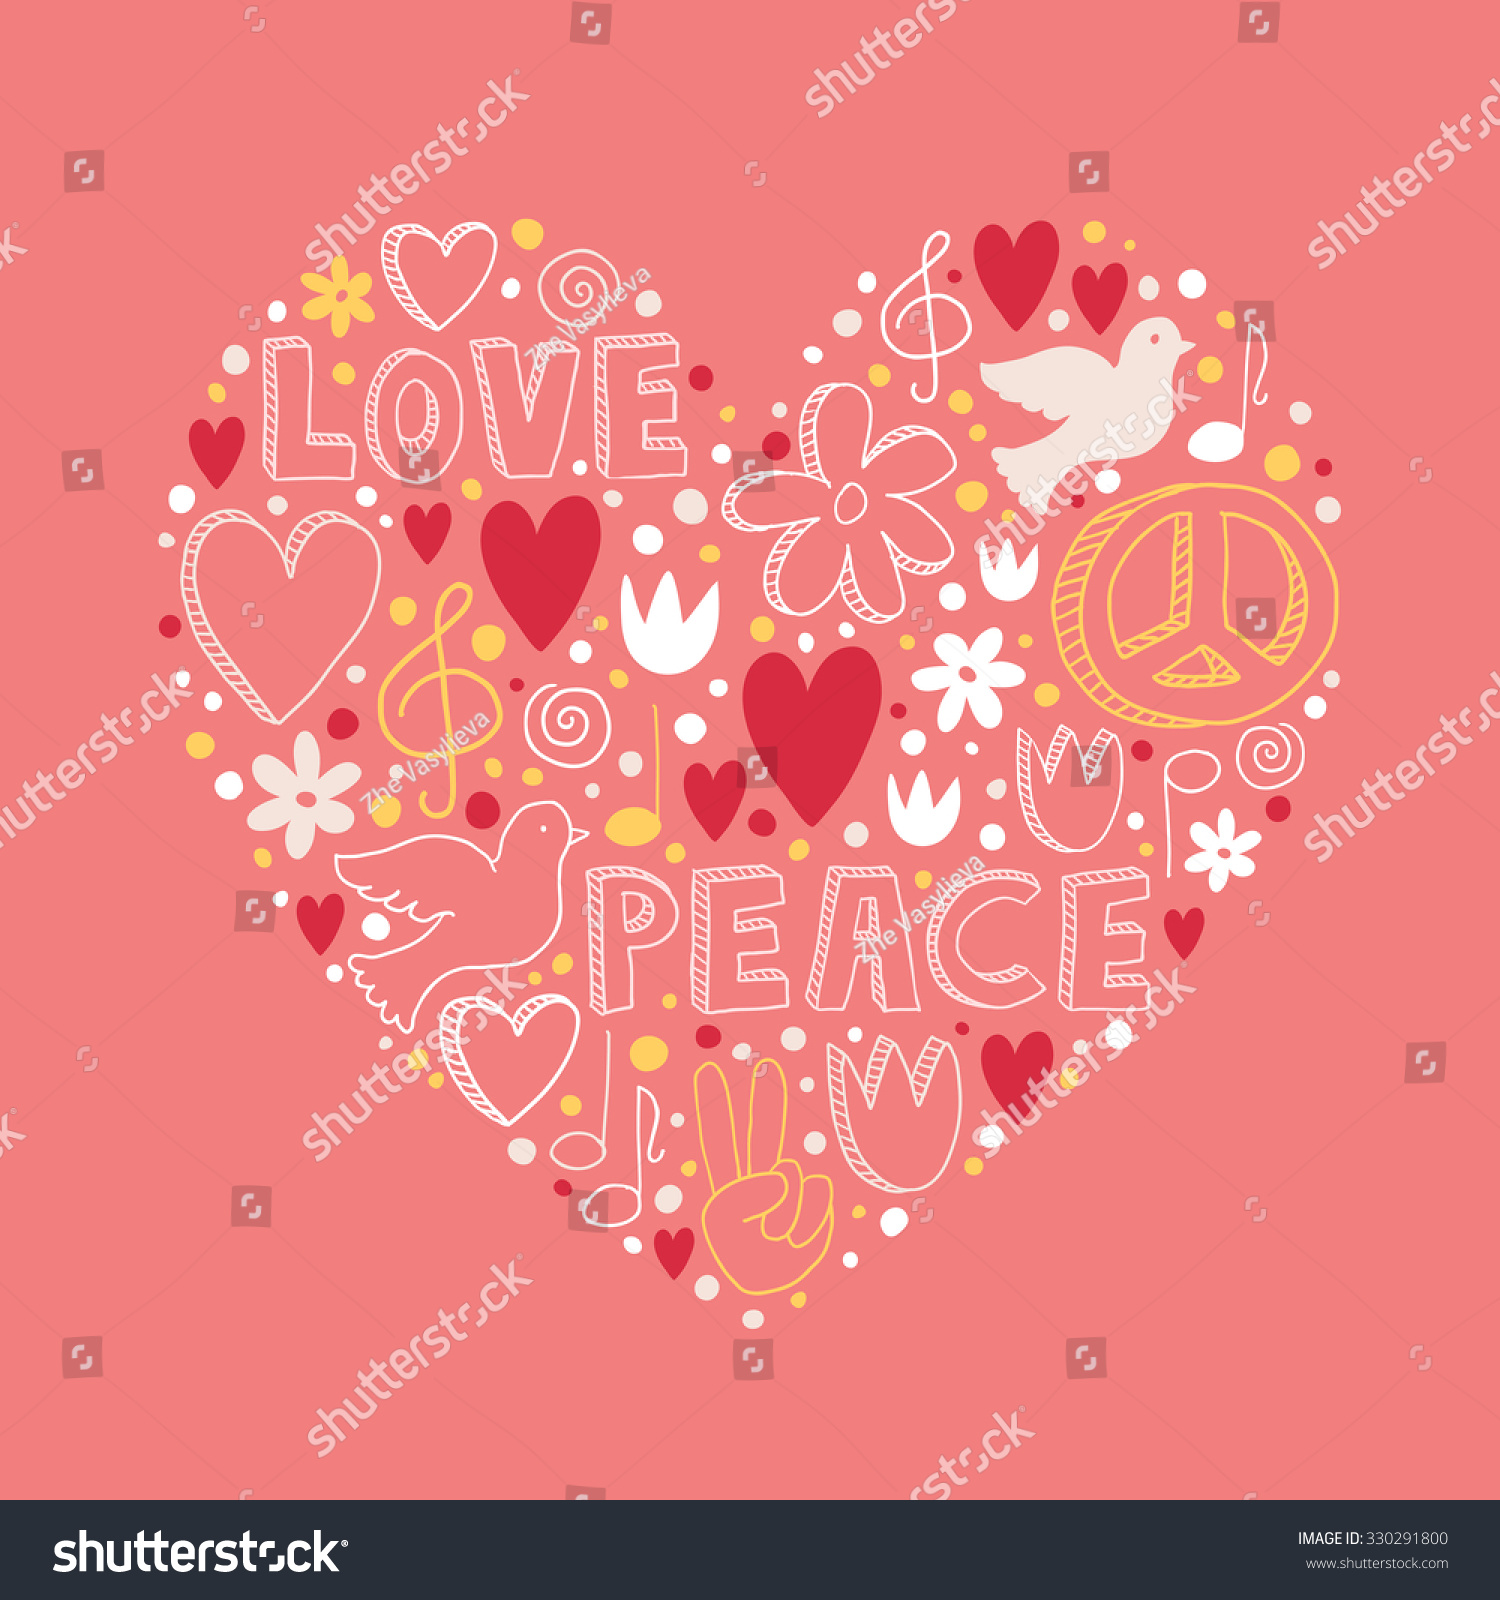 Vector doodle symbols on love peace stock vector 330291800 vector doodle symbols on love and peace theme in heart shape on light pink background biocorpaavc